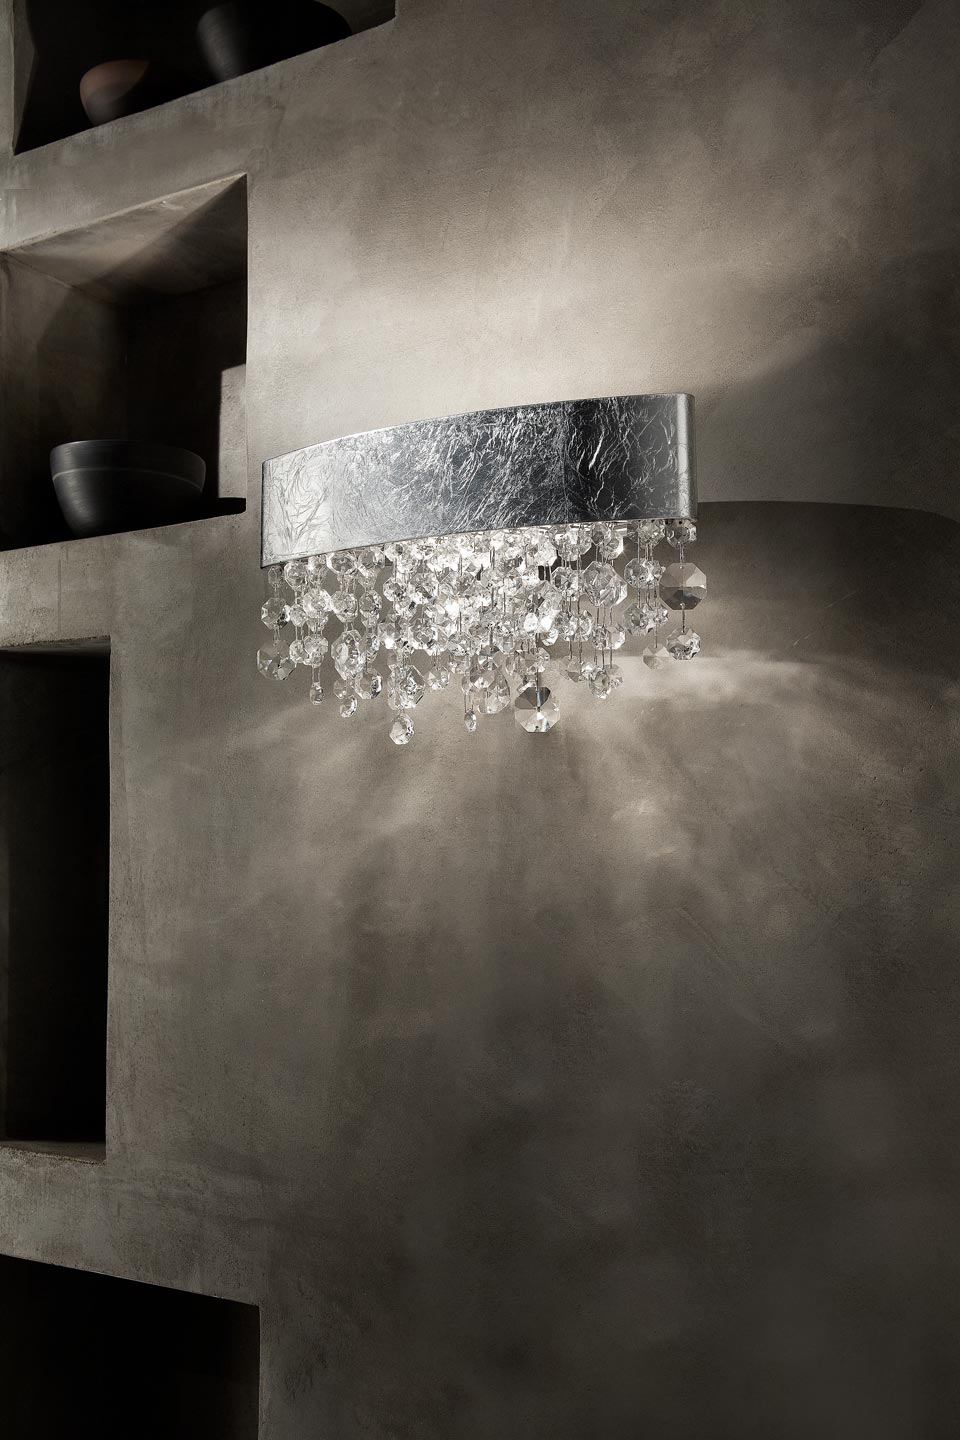 Ola wall lamp in silver painted metal with silver leaf. Masiero.